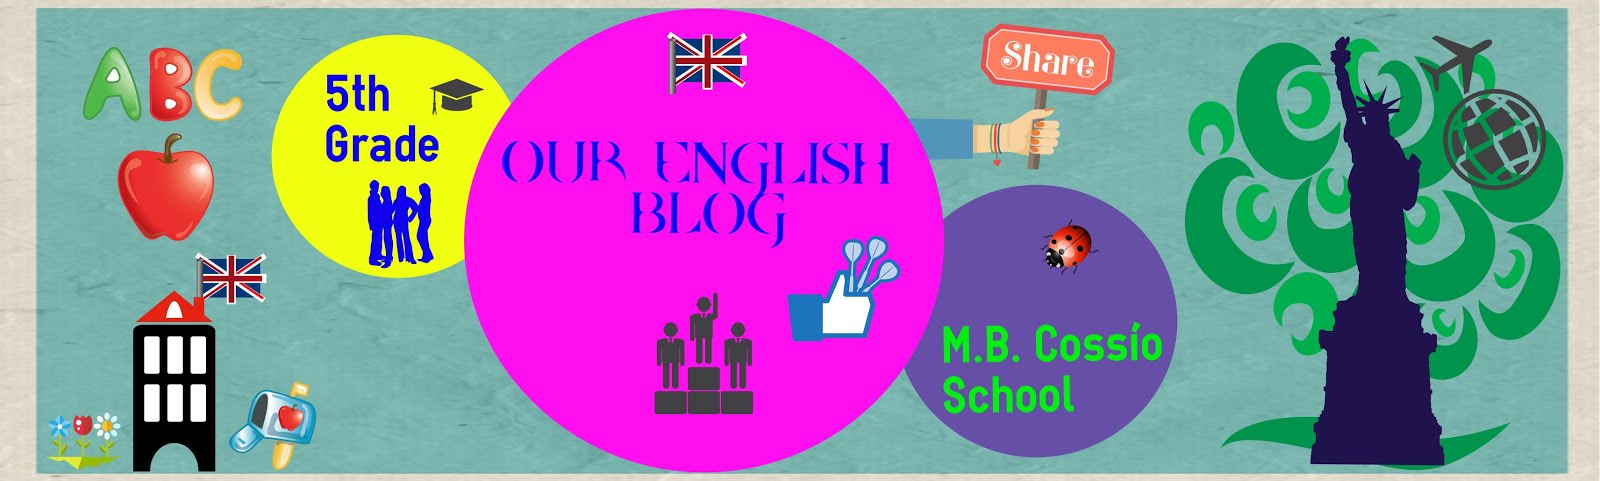 OUR ENGLISH BLOG 5th GRADE